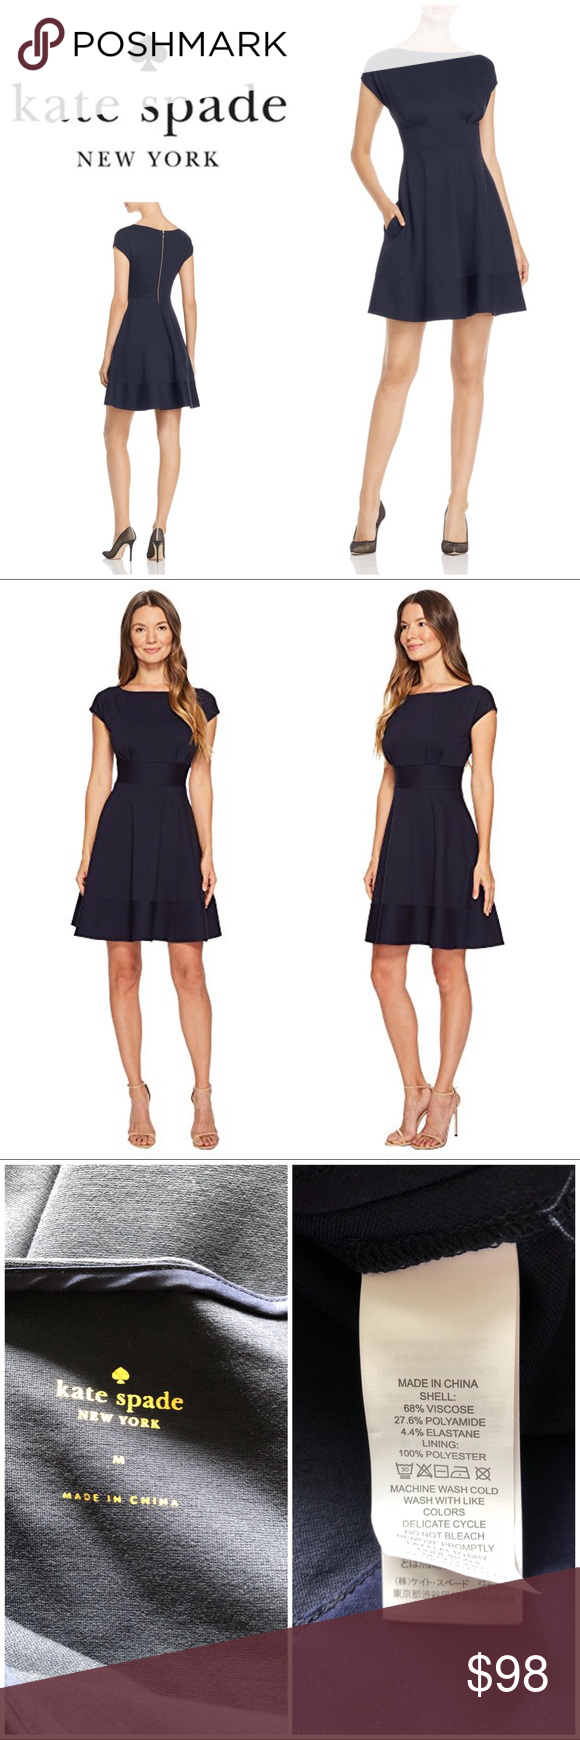 16284b2dfbe9 NWOT Kate Spade fiorella ponte short-sleeve dress New without tags, Kate  Spade fiorella